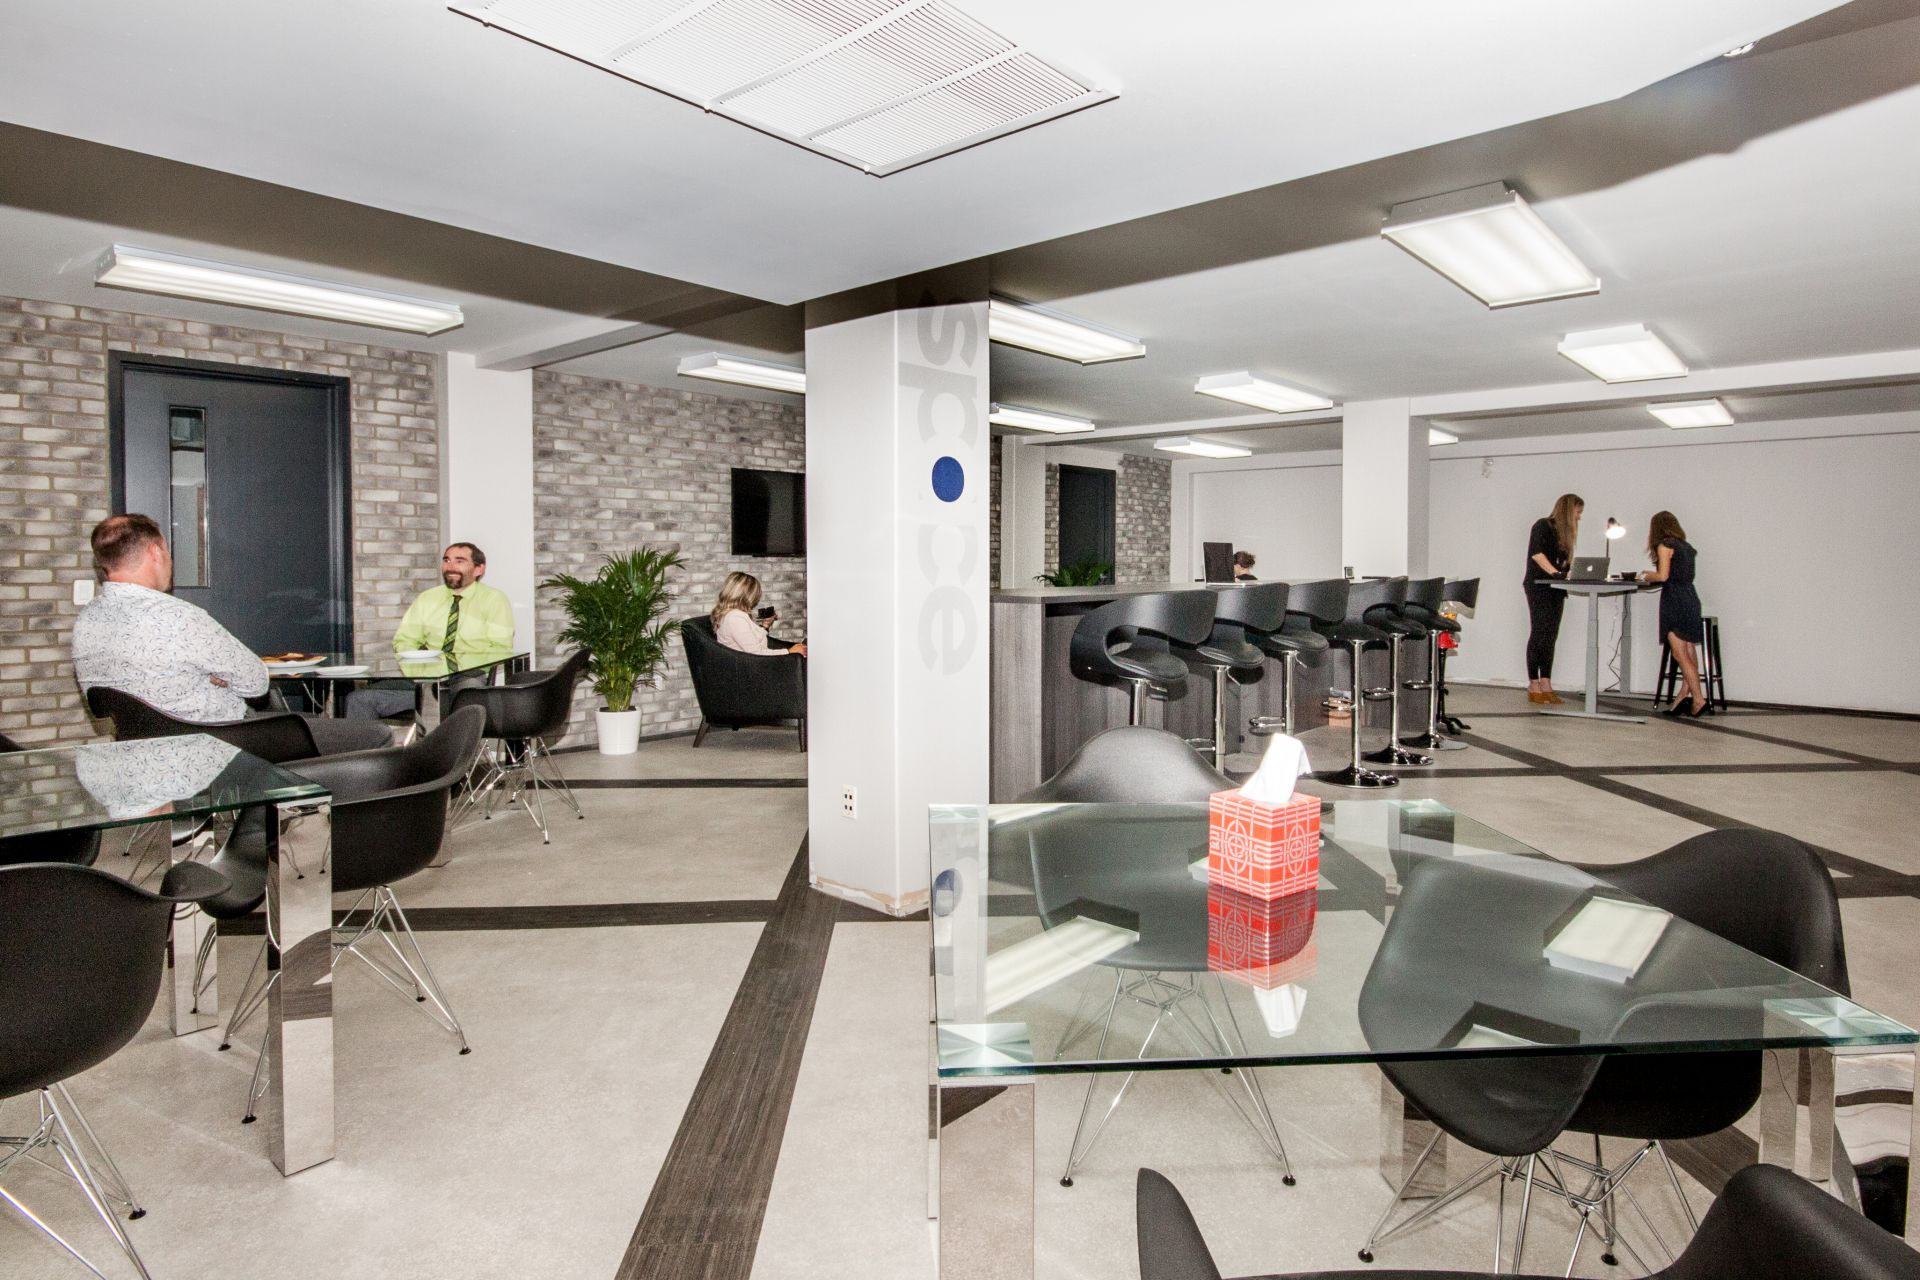 [inn]space Executive Offices & Business Centre, Barrie